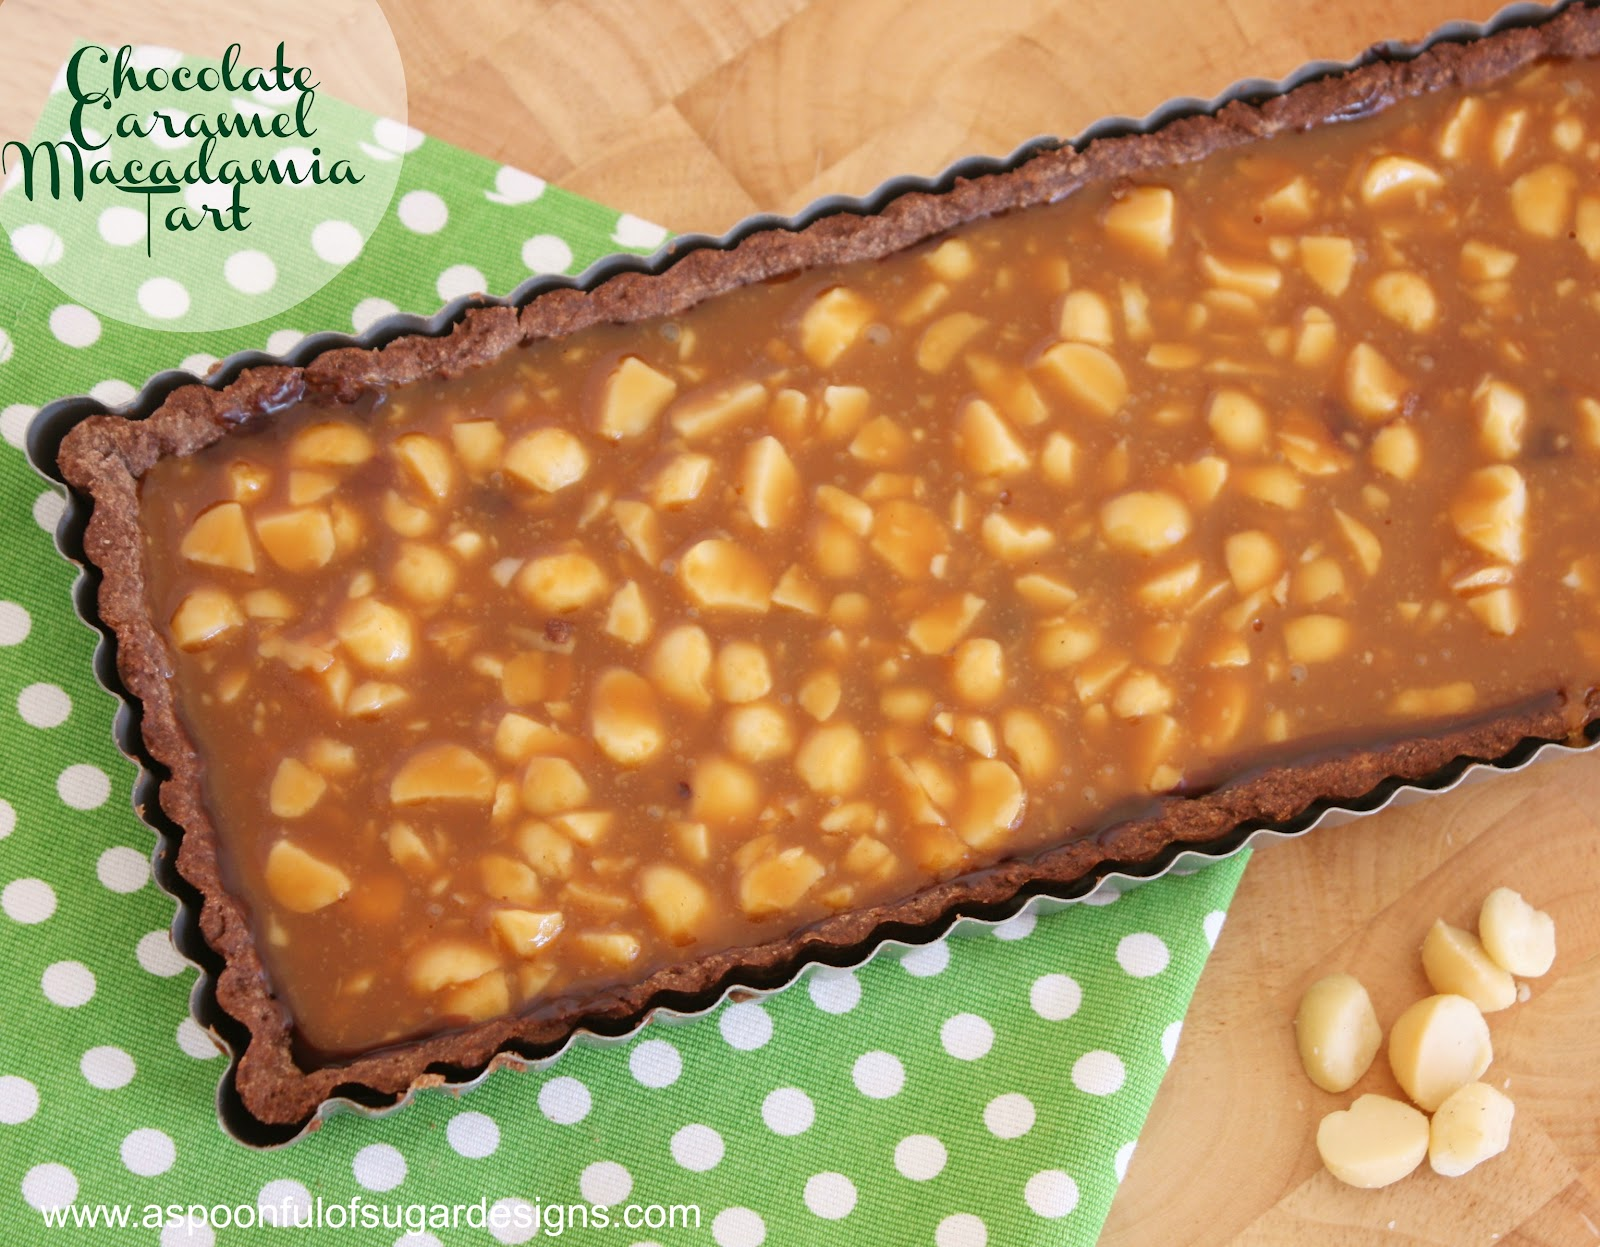 chocolate caramel macadamia tart ingredients 1 2 cup macadamia nuts ...